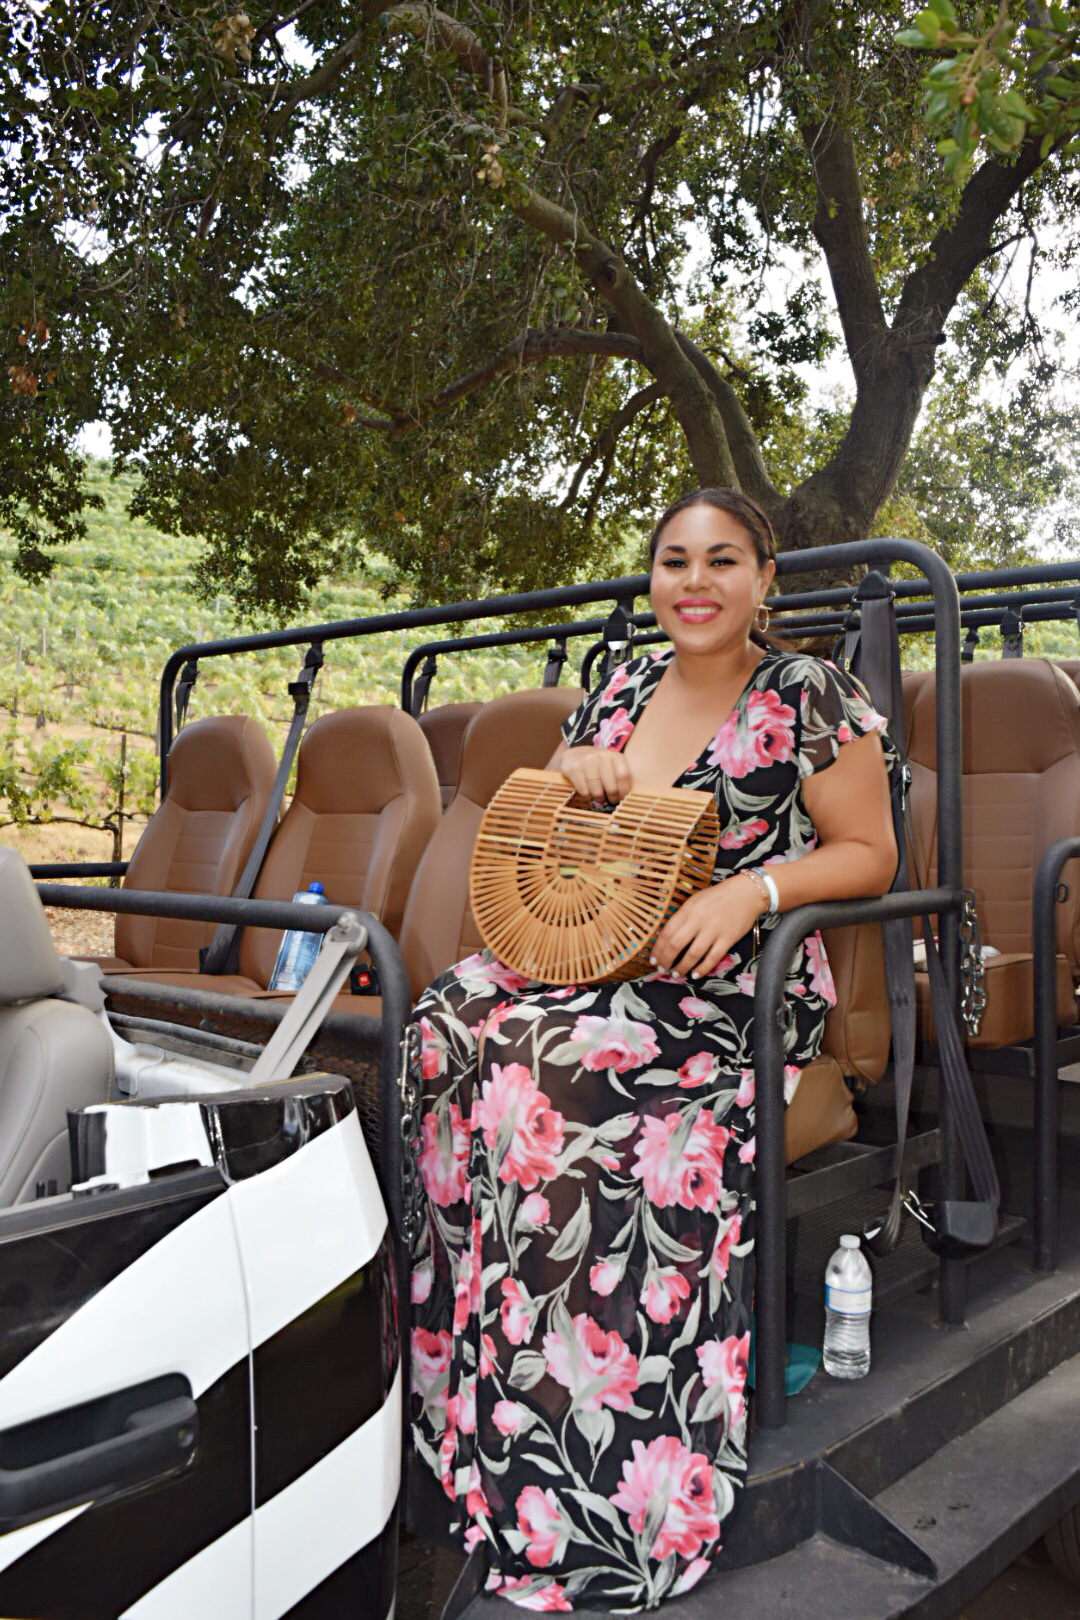 Malibu Wine Safari: My Explorer Tour Experience